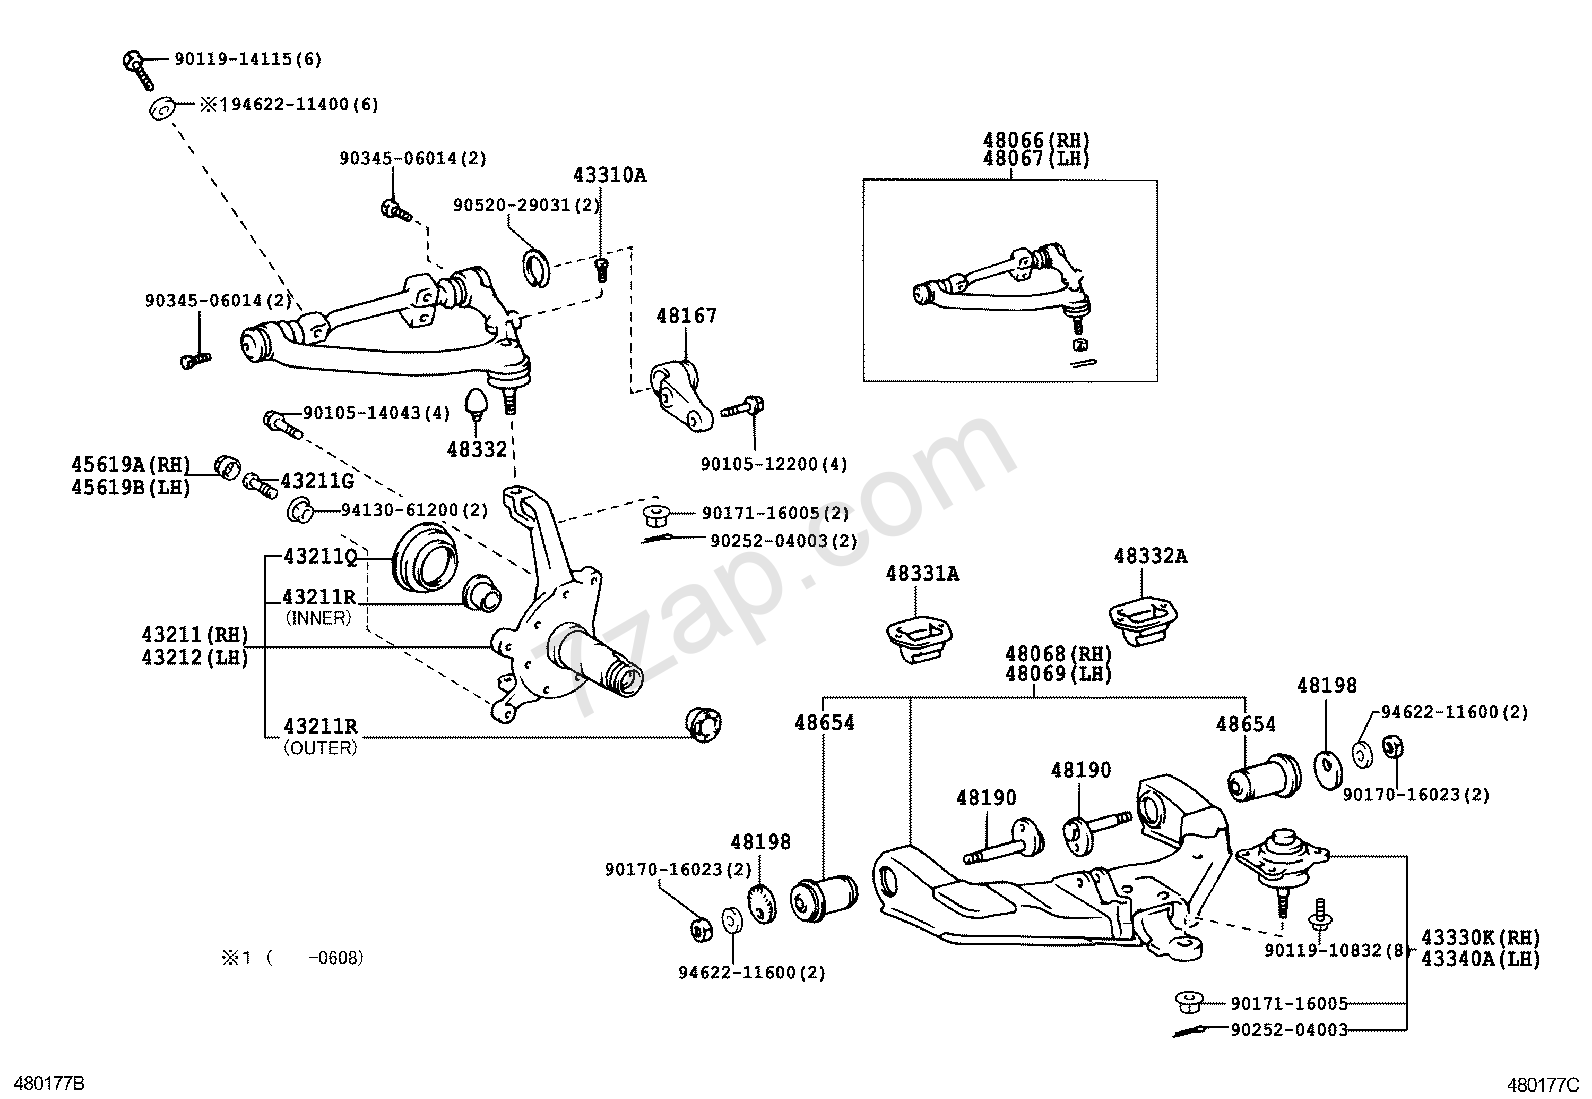 2008 Toyota Sienna Front Suspension Diagram Electrical Wiring Diagrams For Explained